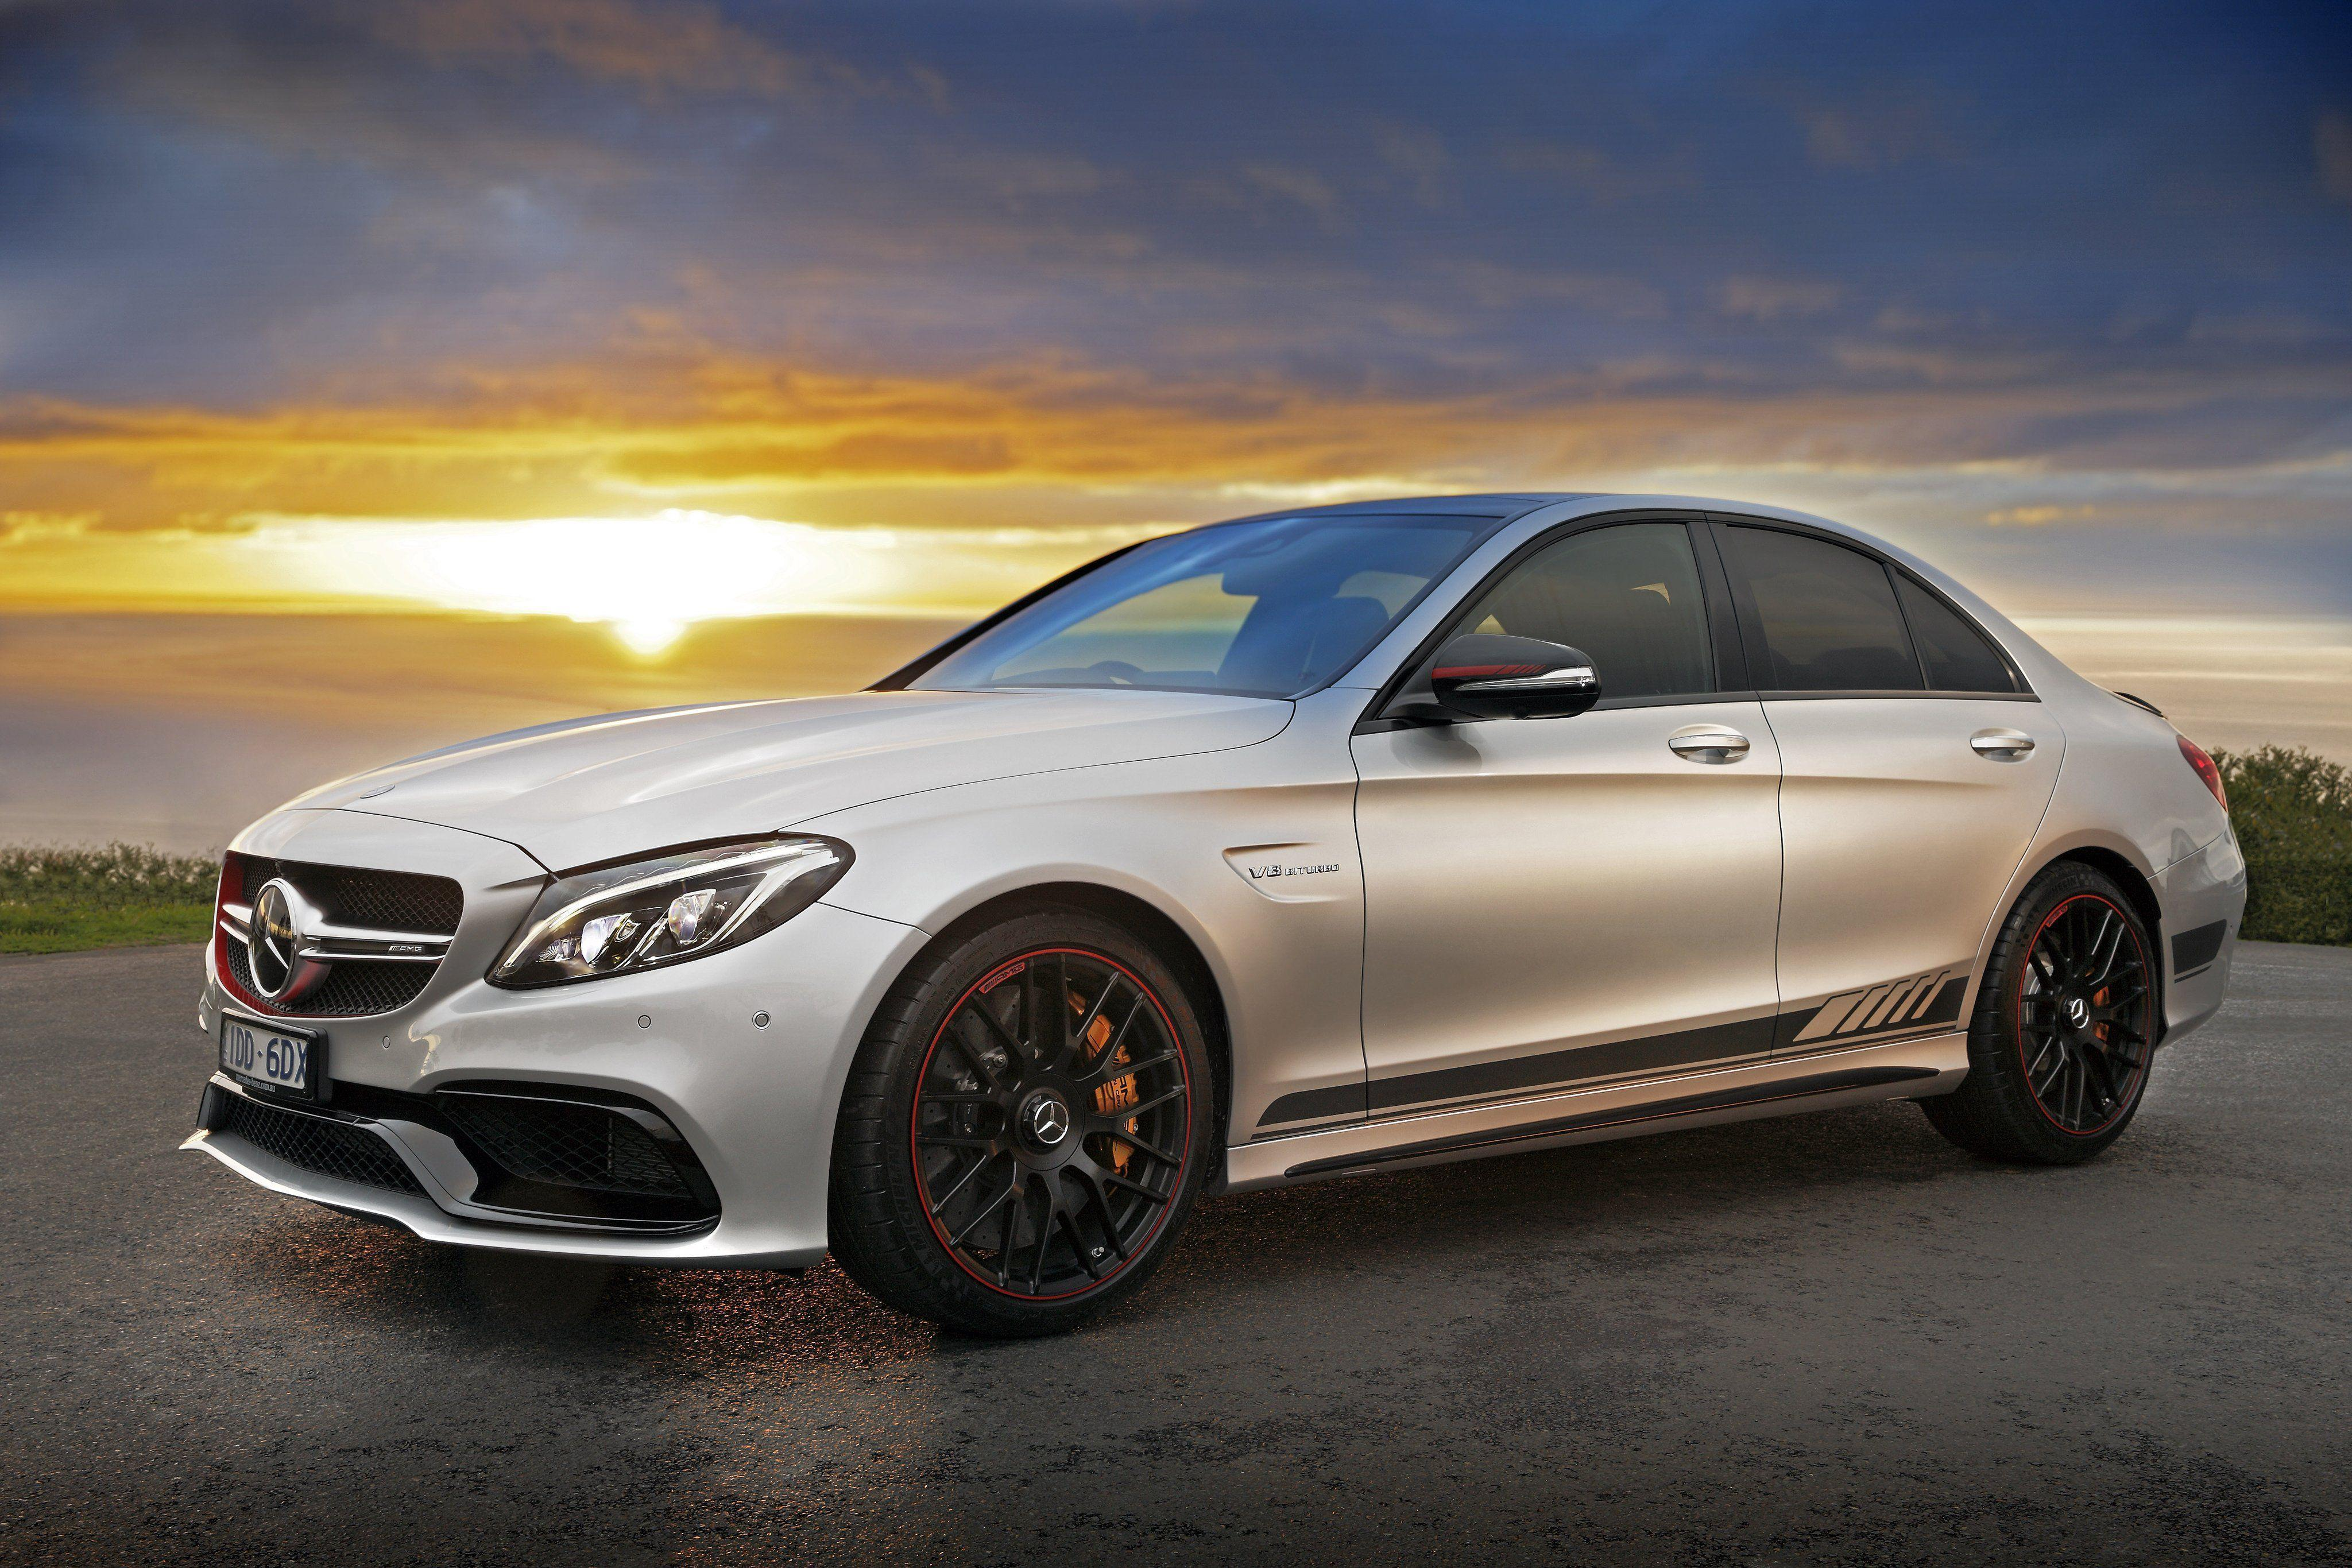 Mercedes amg c63 s coupe wallpapers wallpaper cave for Mercedes benz c63s